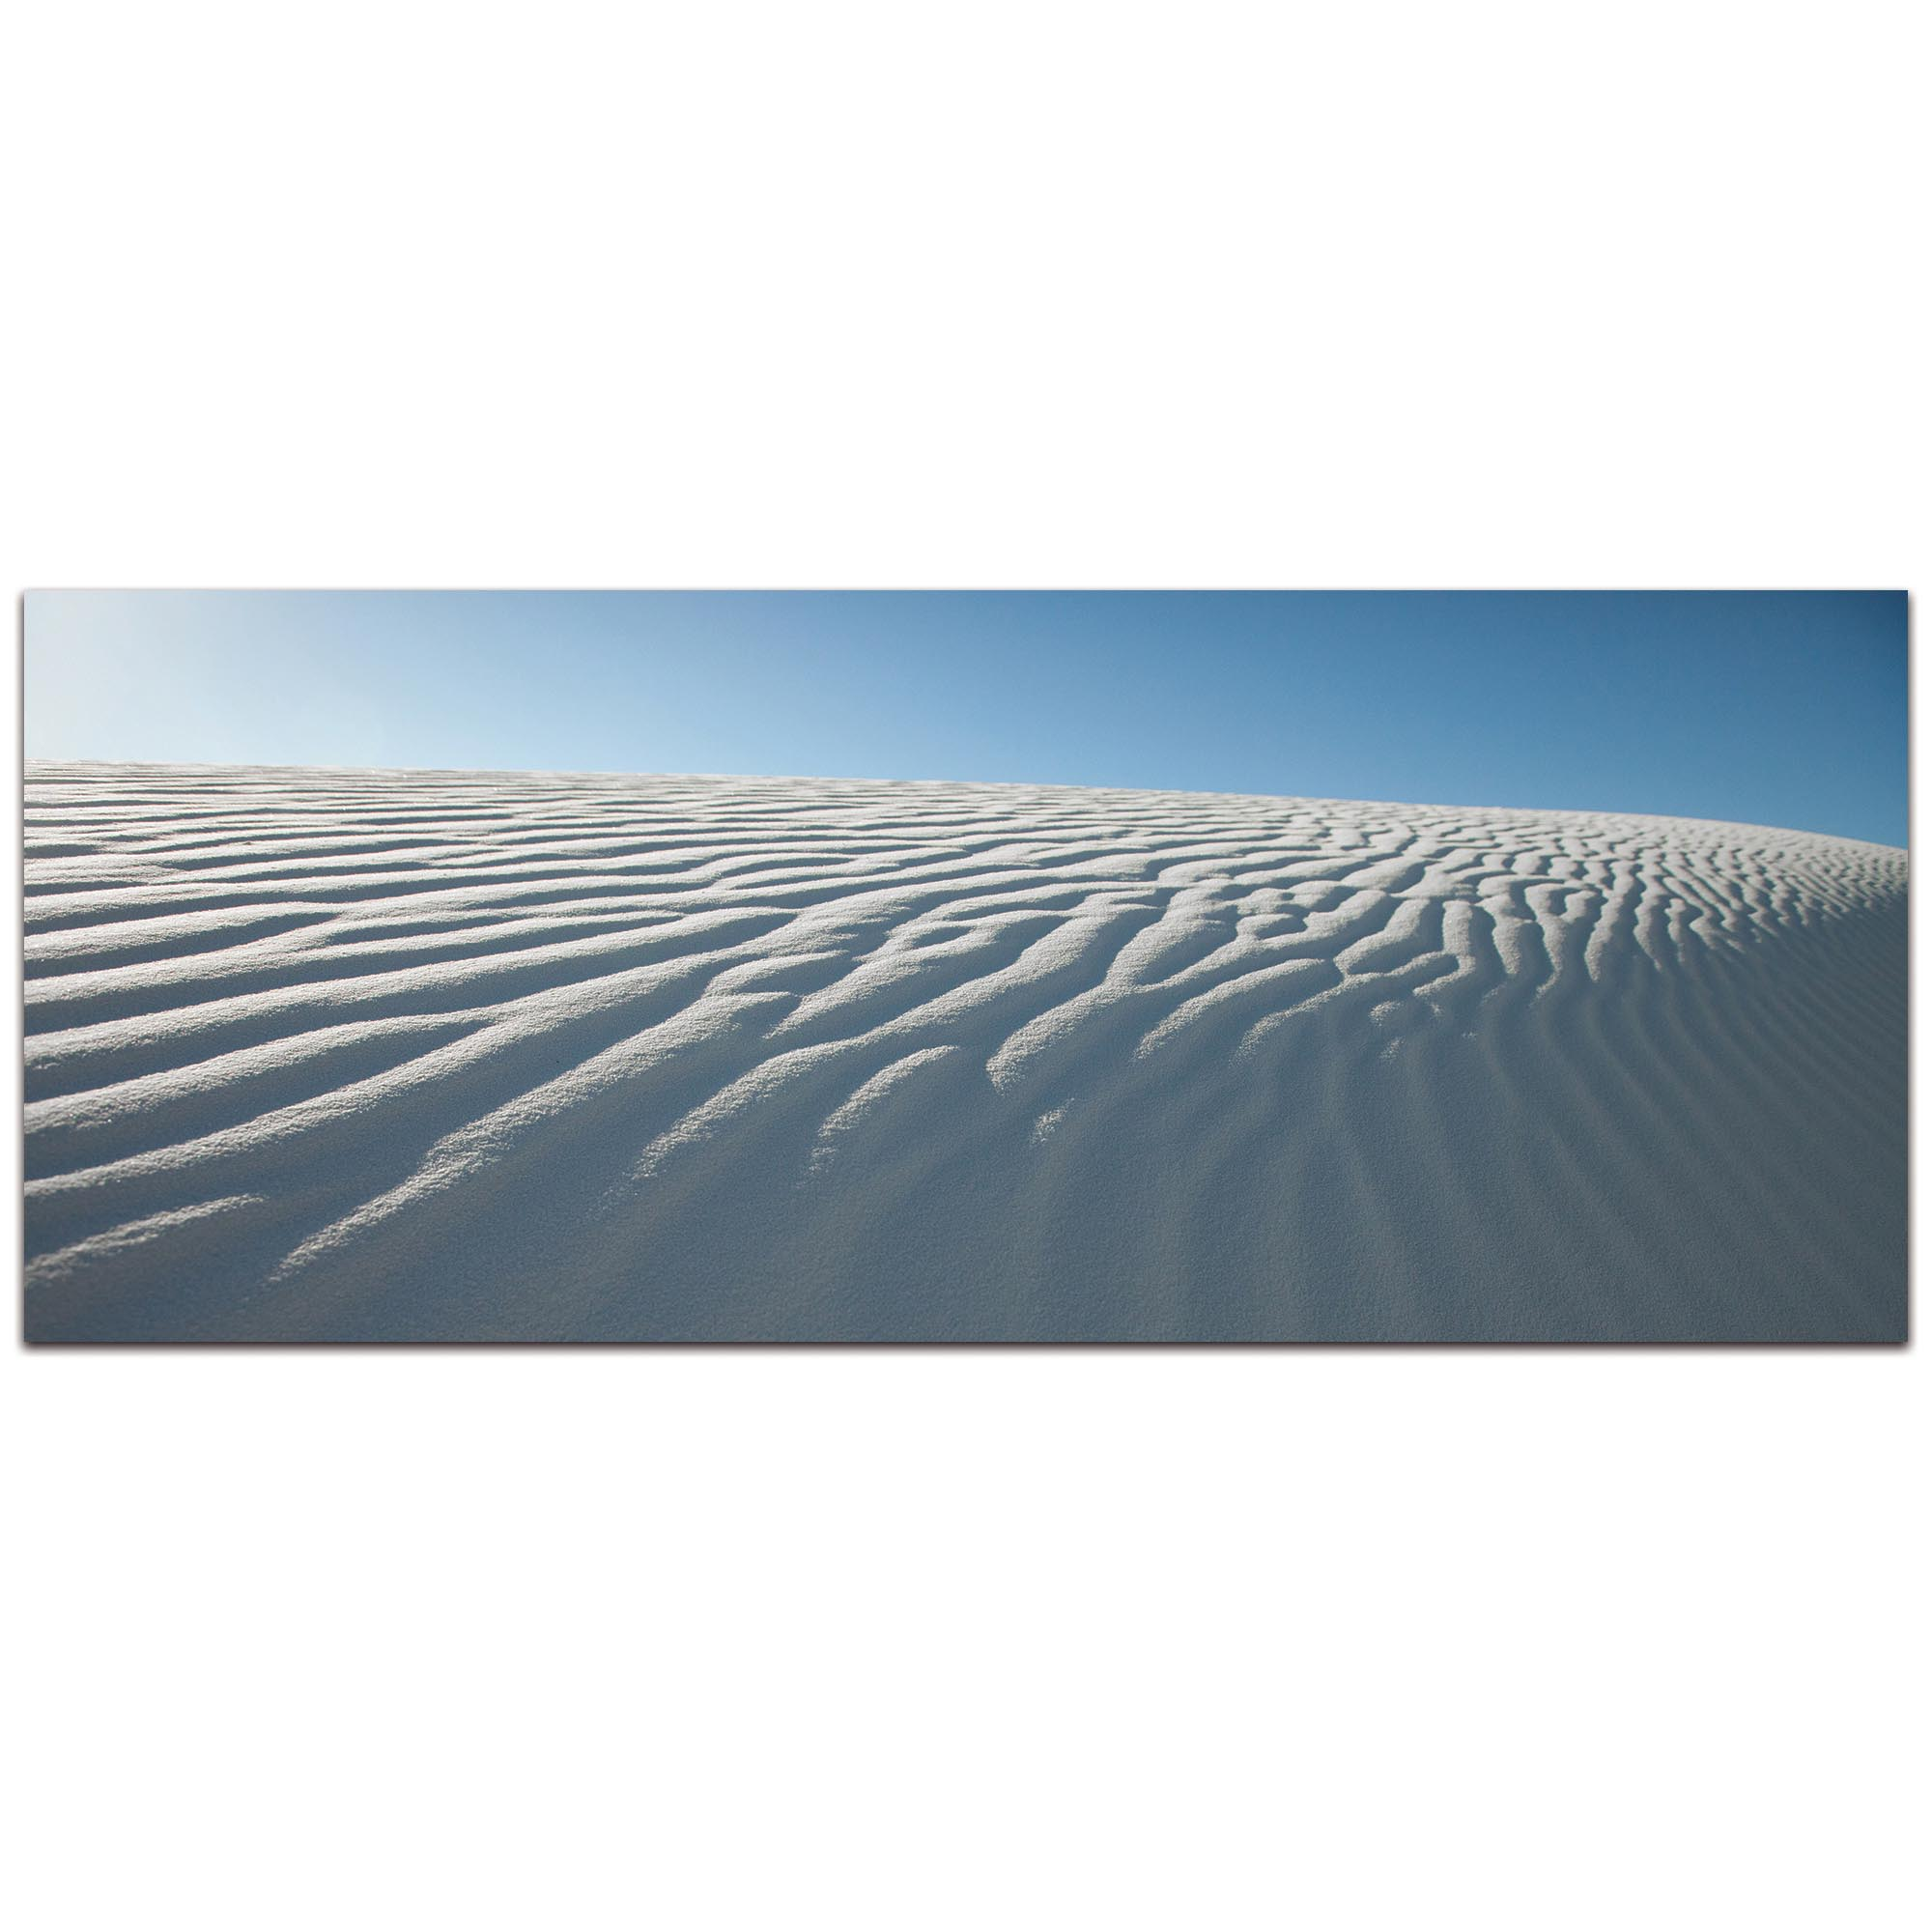 Landscape Photography 'Rippled Sand' - Sand Dunes Art on Metal or Plexiglass